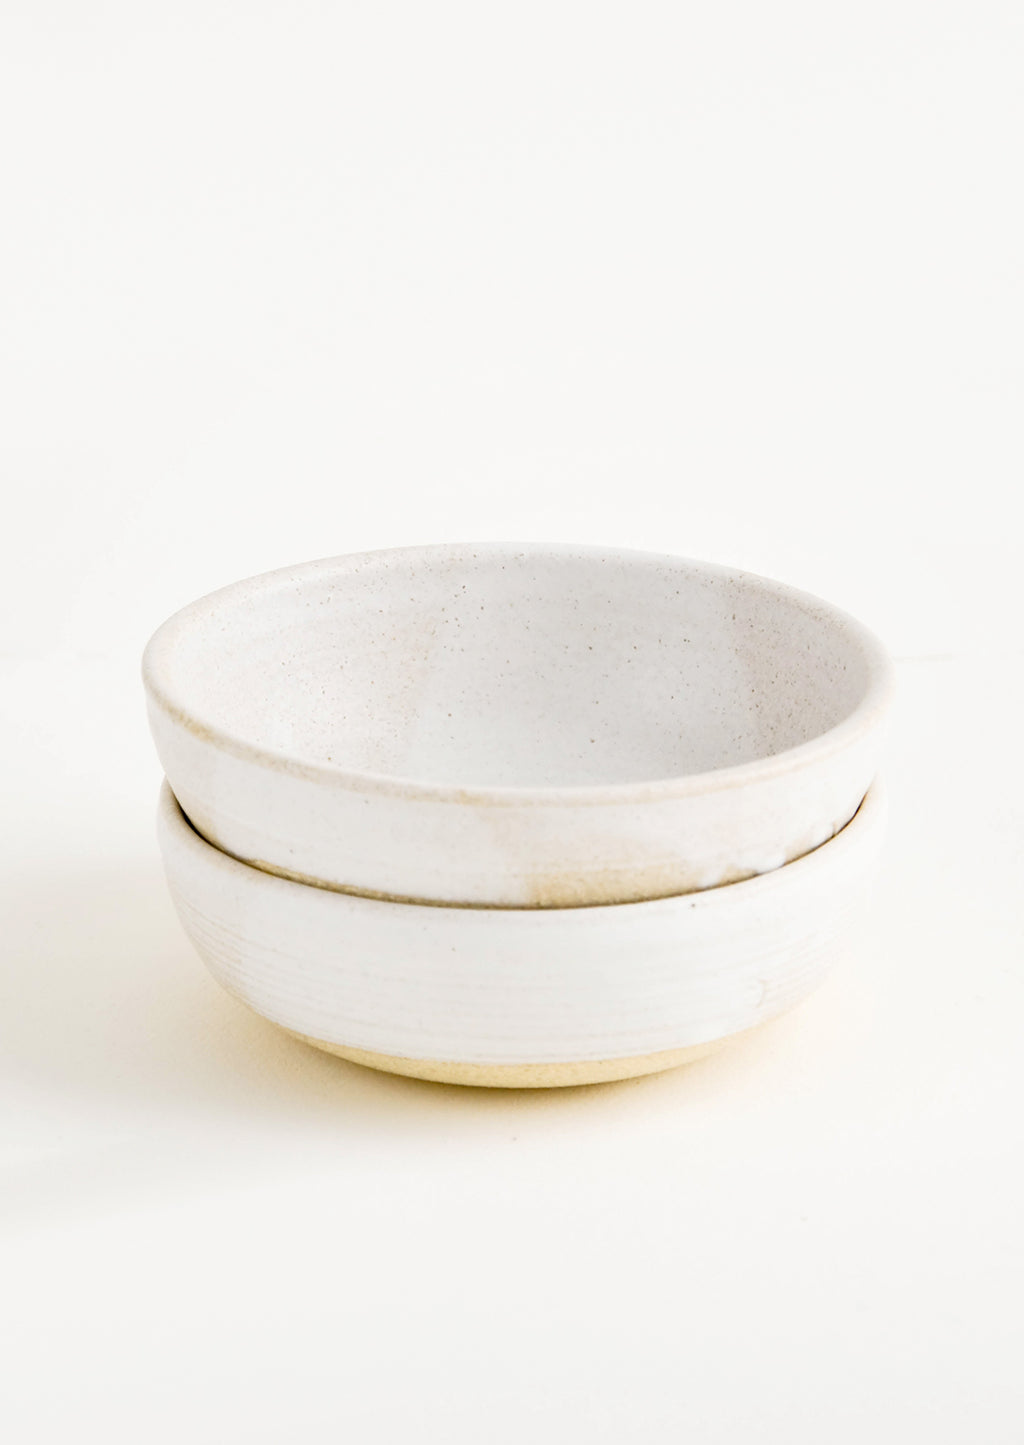 Rustic Ceramic Yogurt Bowl in Warm White - LEIF